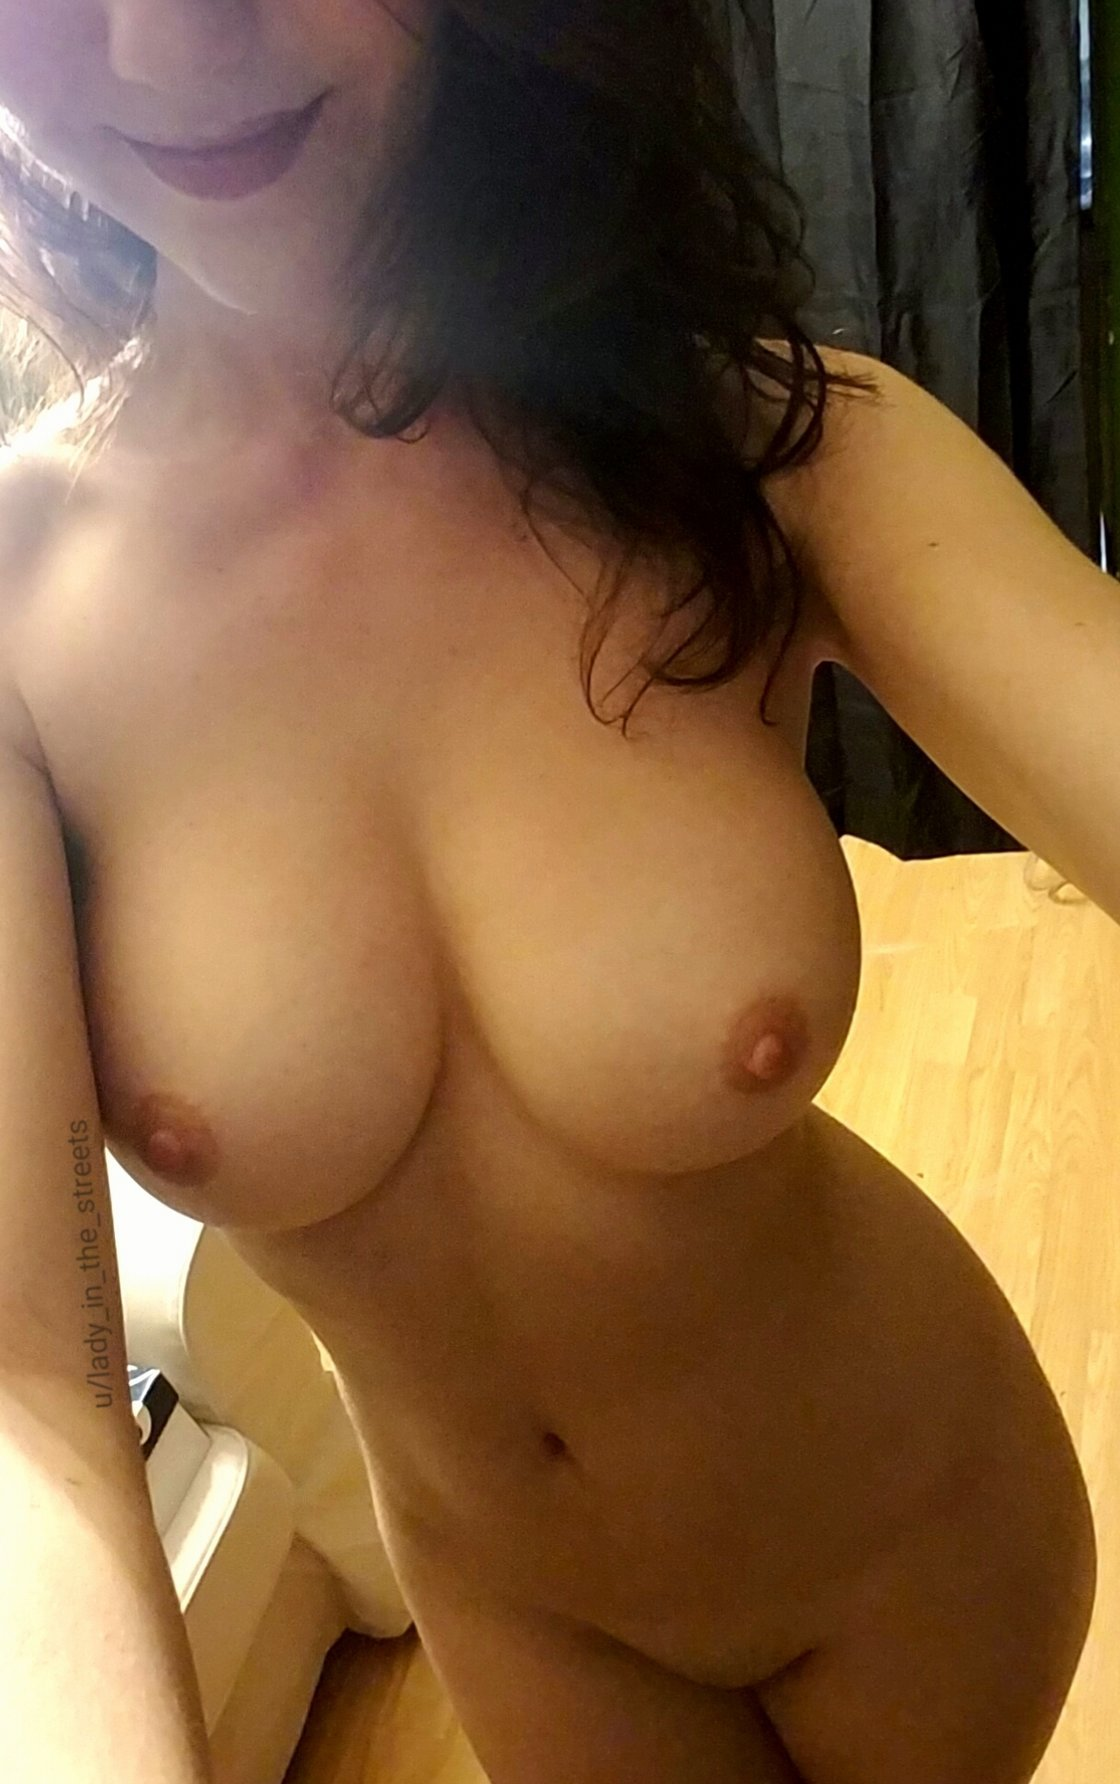 Lady In The Streets Lady In The Streets Onlyfans Nude Leaks 0009